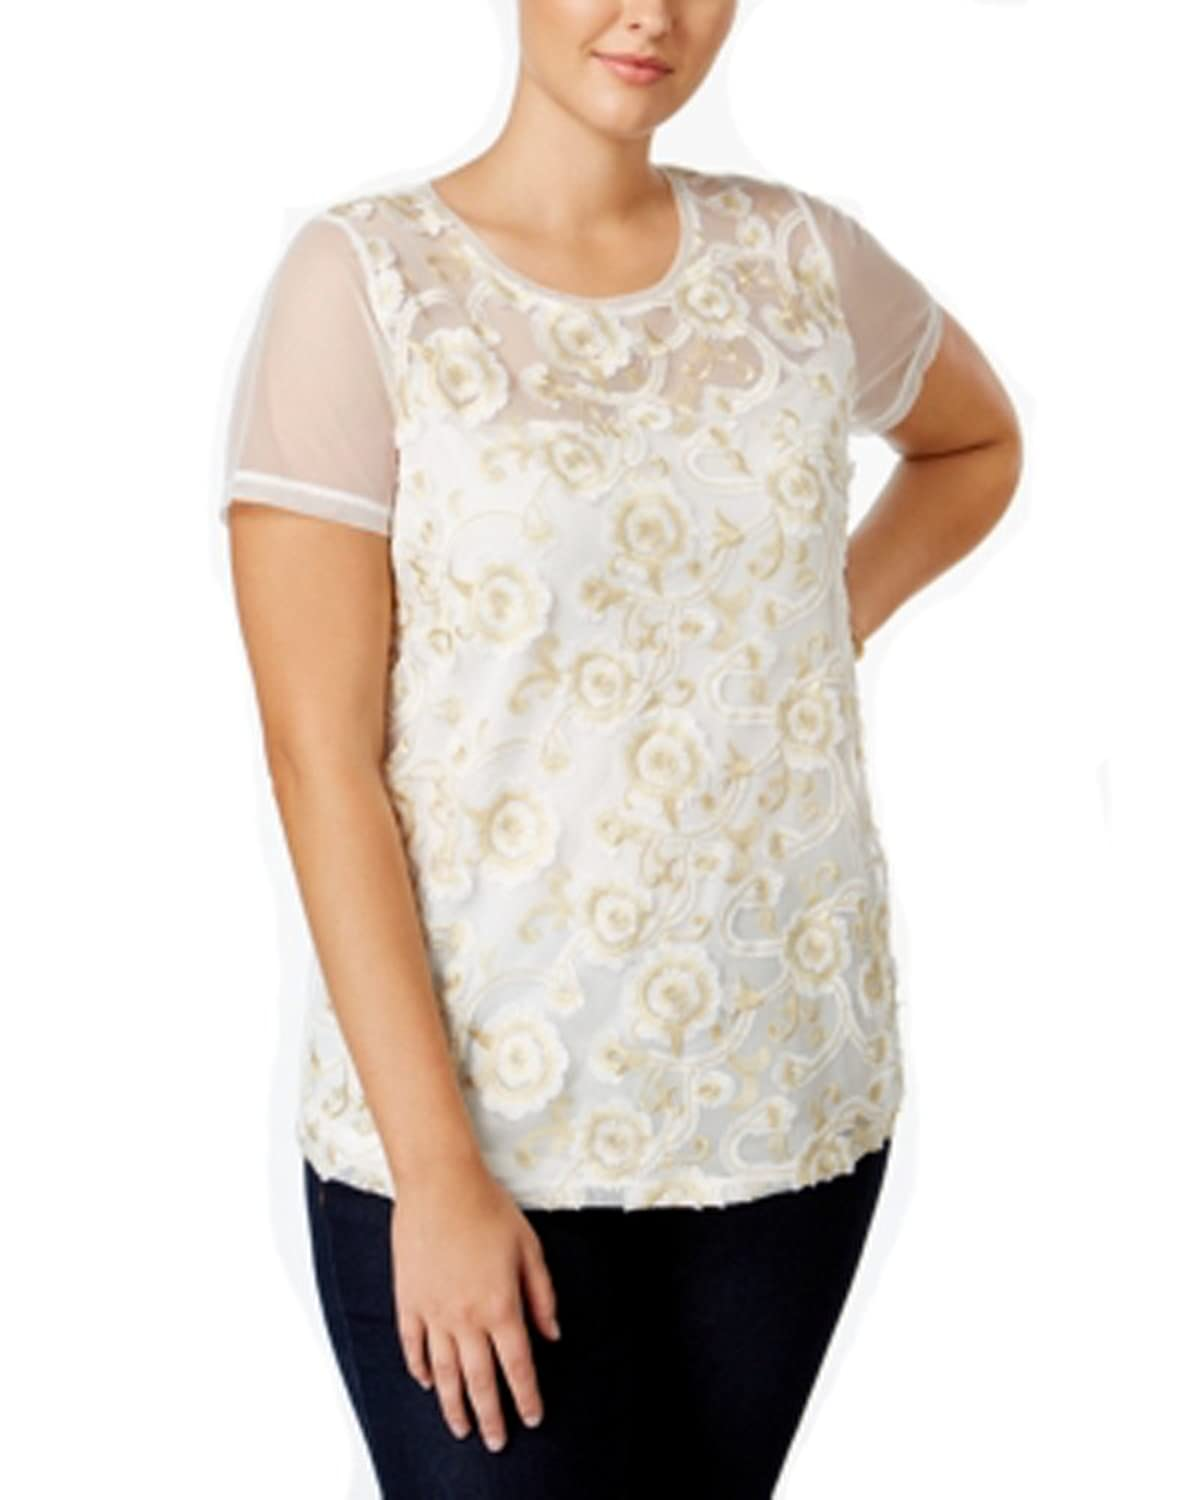 Inc International Concepts Womens Plus Size Embroidered Metallic Flower White Shirt Top 0X at Amazon Womens Clothing store: